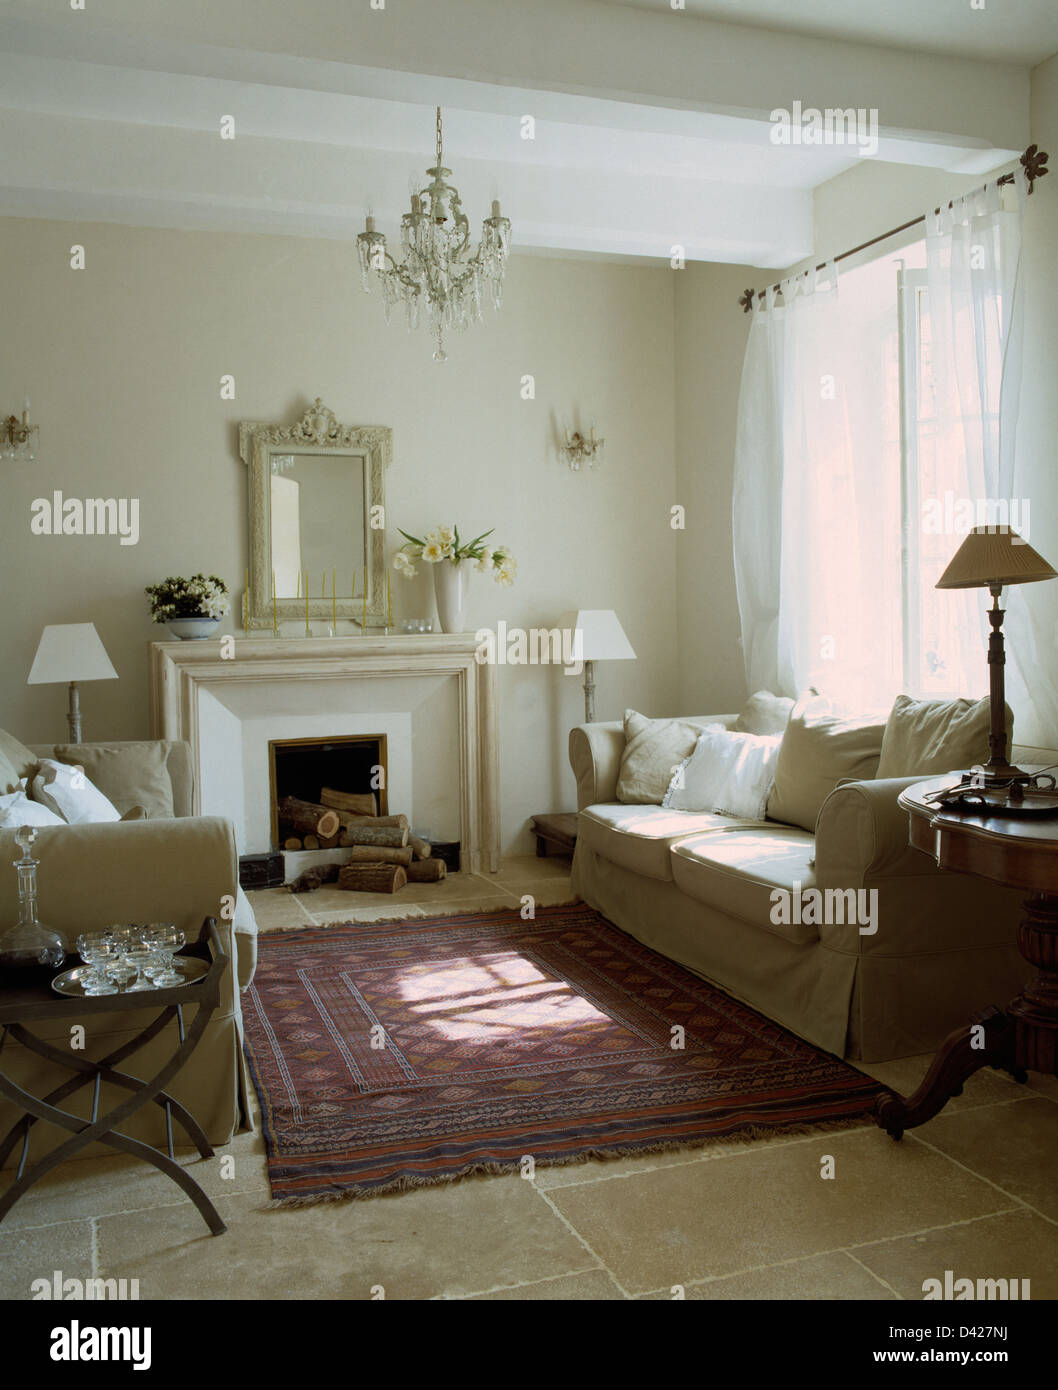 Cream Sofas On Either Side Of Fireplace In French Country Living Room With Oriental Rug Stone Flagged Floor